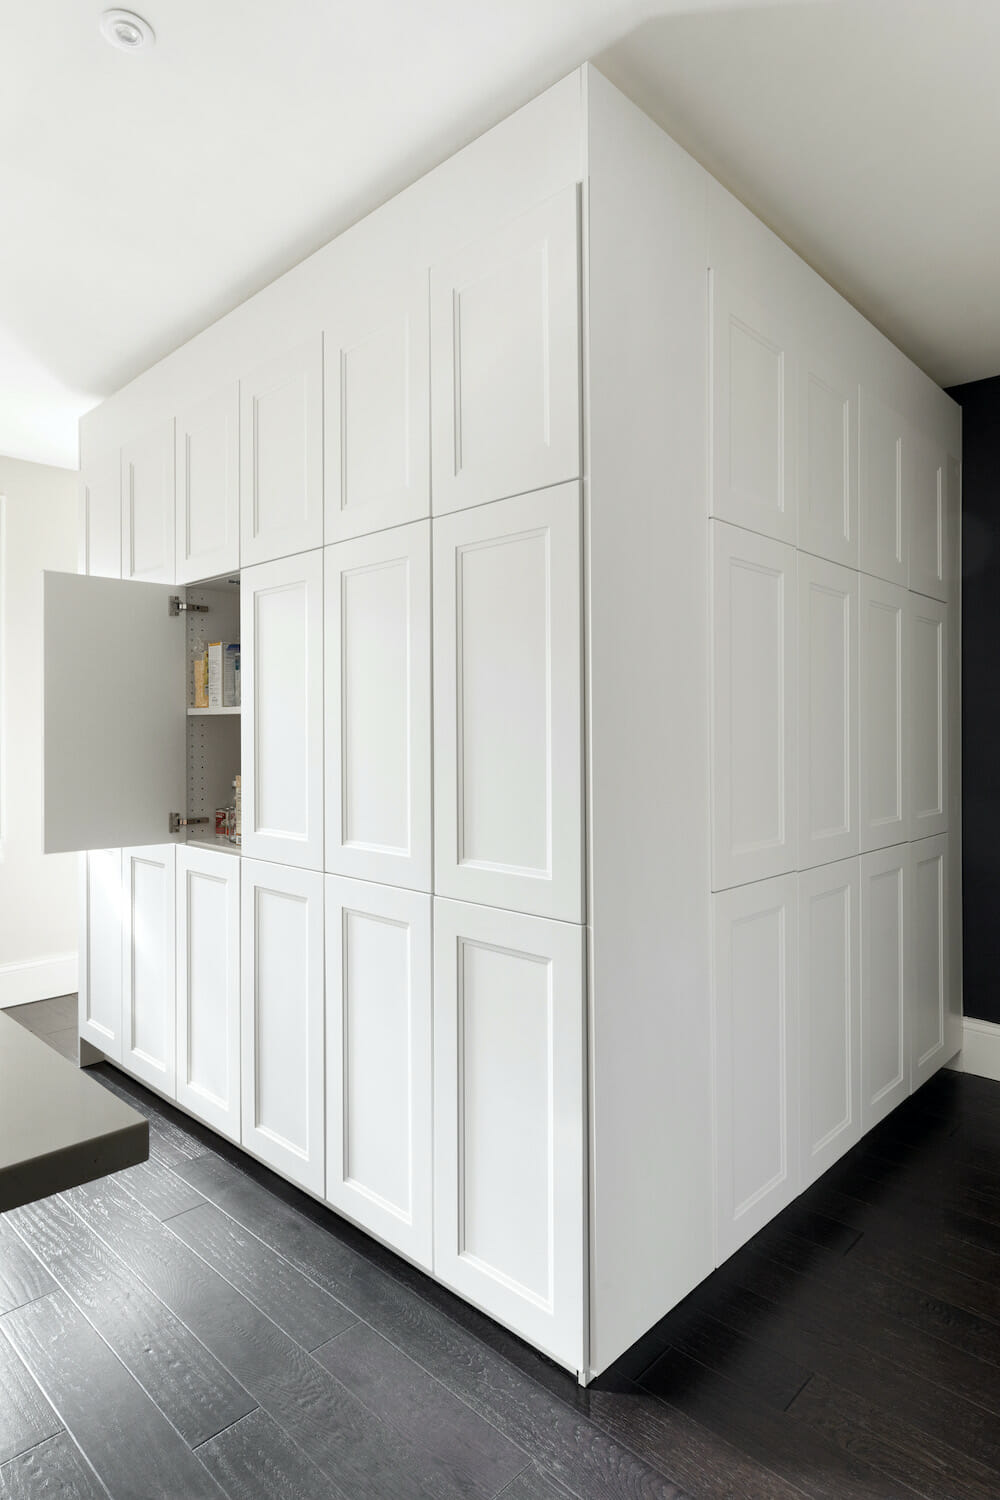 7 Ways Renovators Style Ikea Kitchen Cabinets To Work For Them